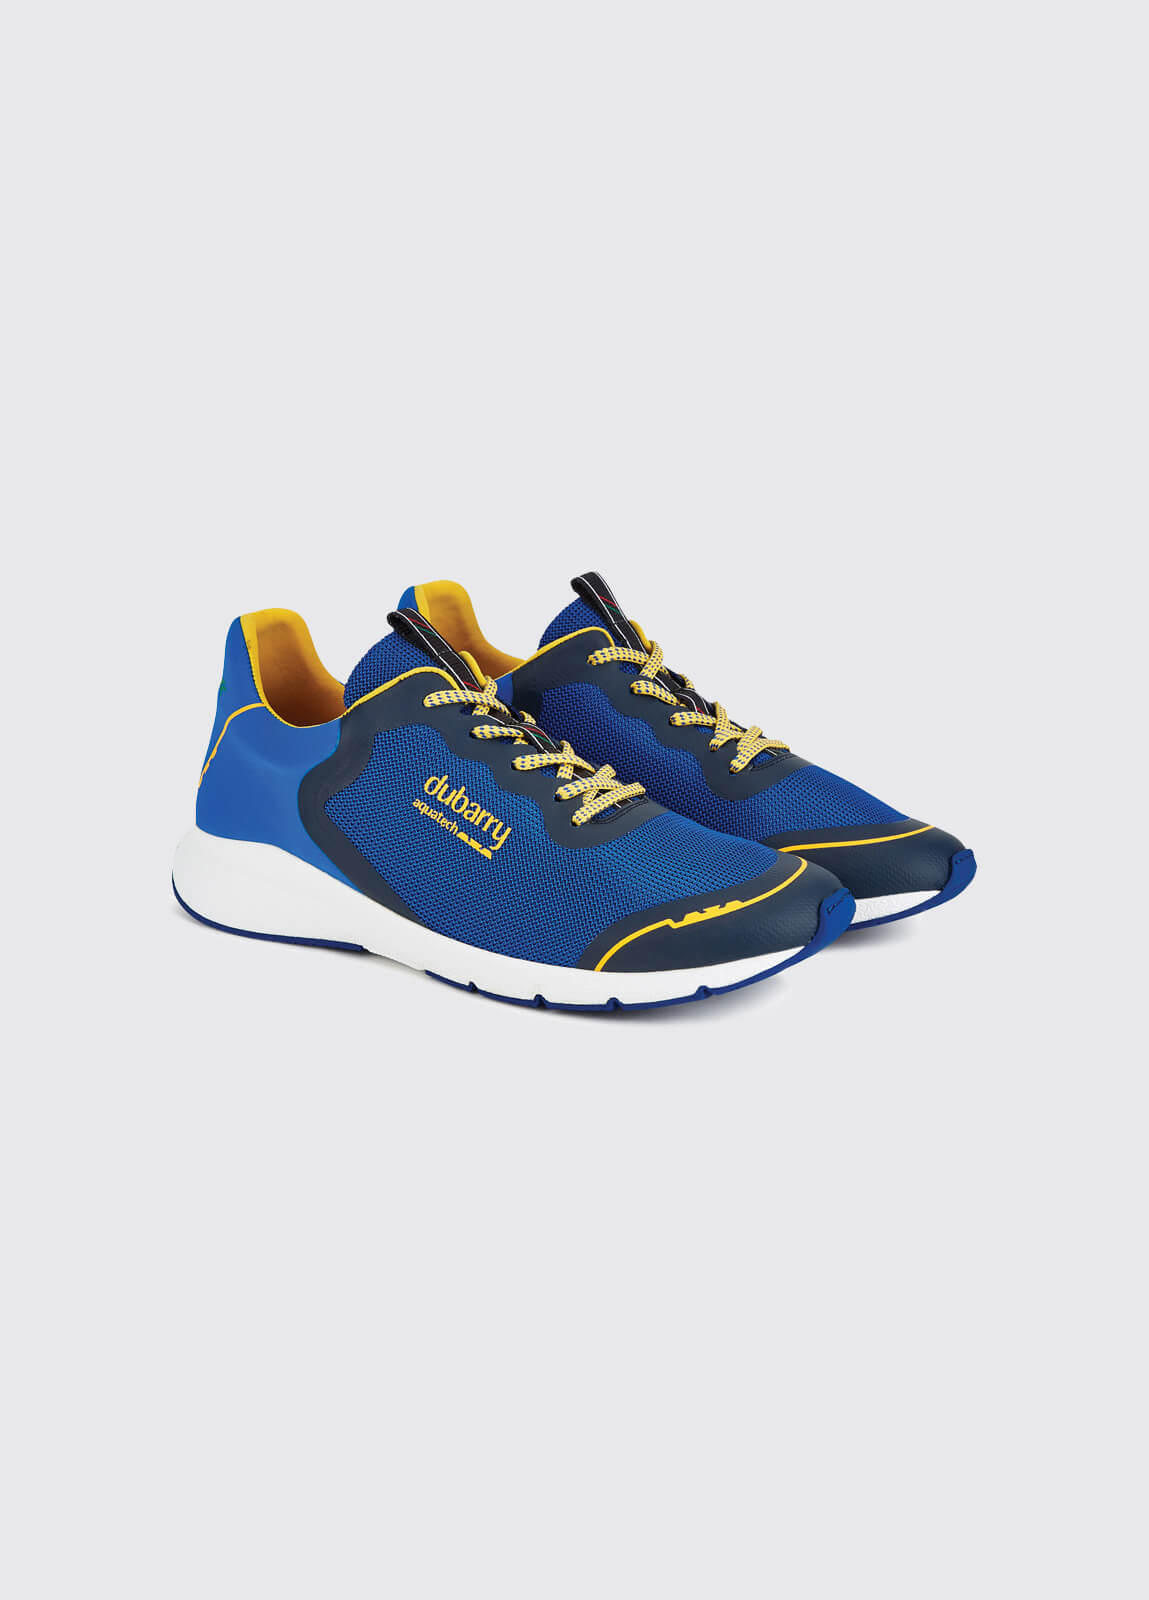 Palma Lightweight Laced Trainer - Kingfisher